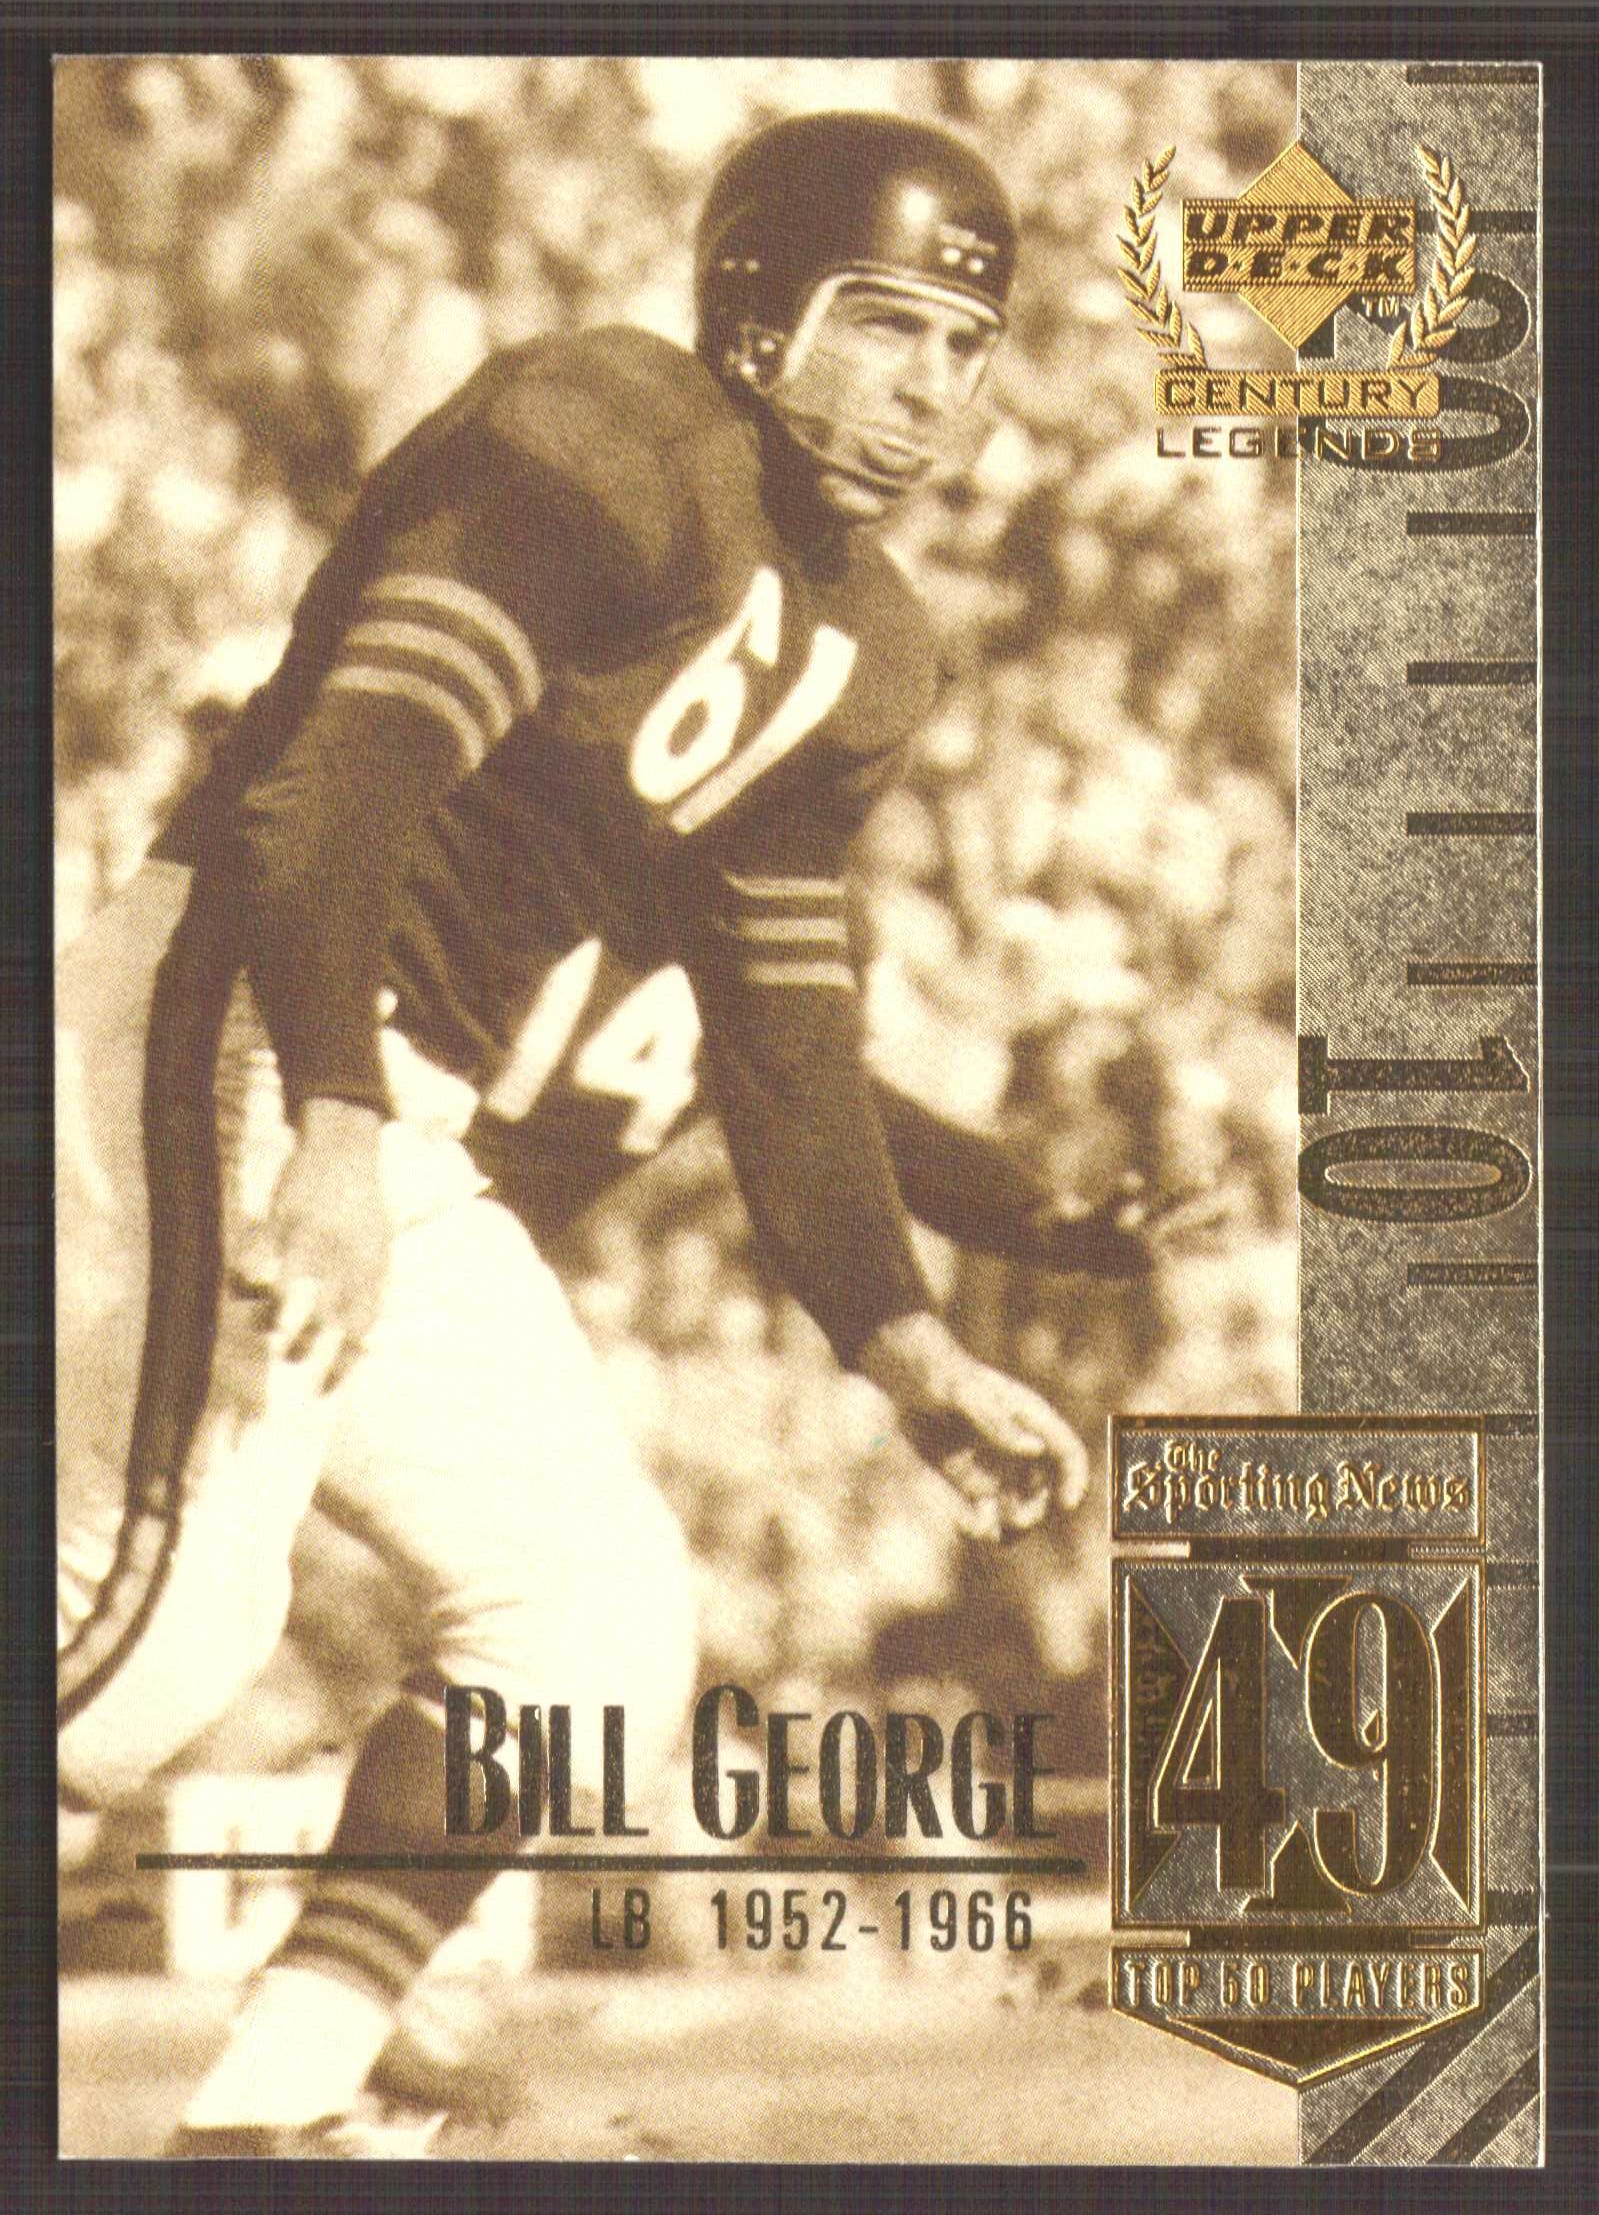 1999 Upper Deck Century Legends #49 Bill George